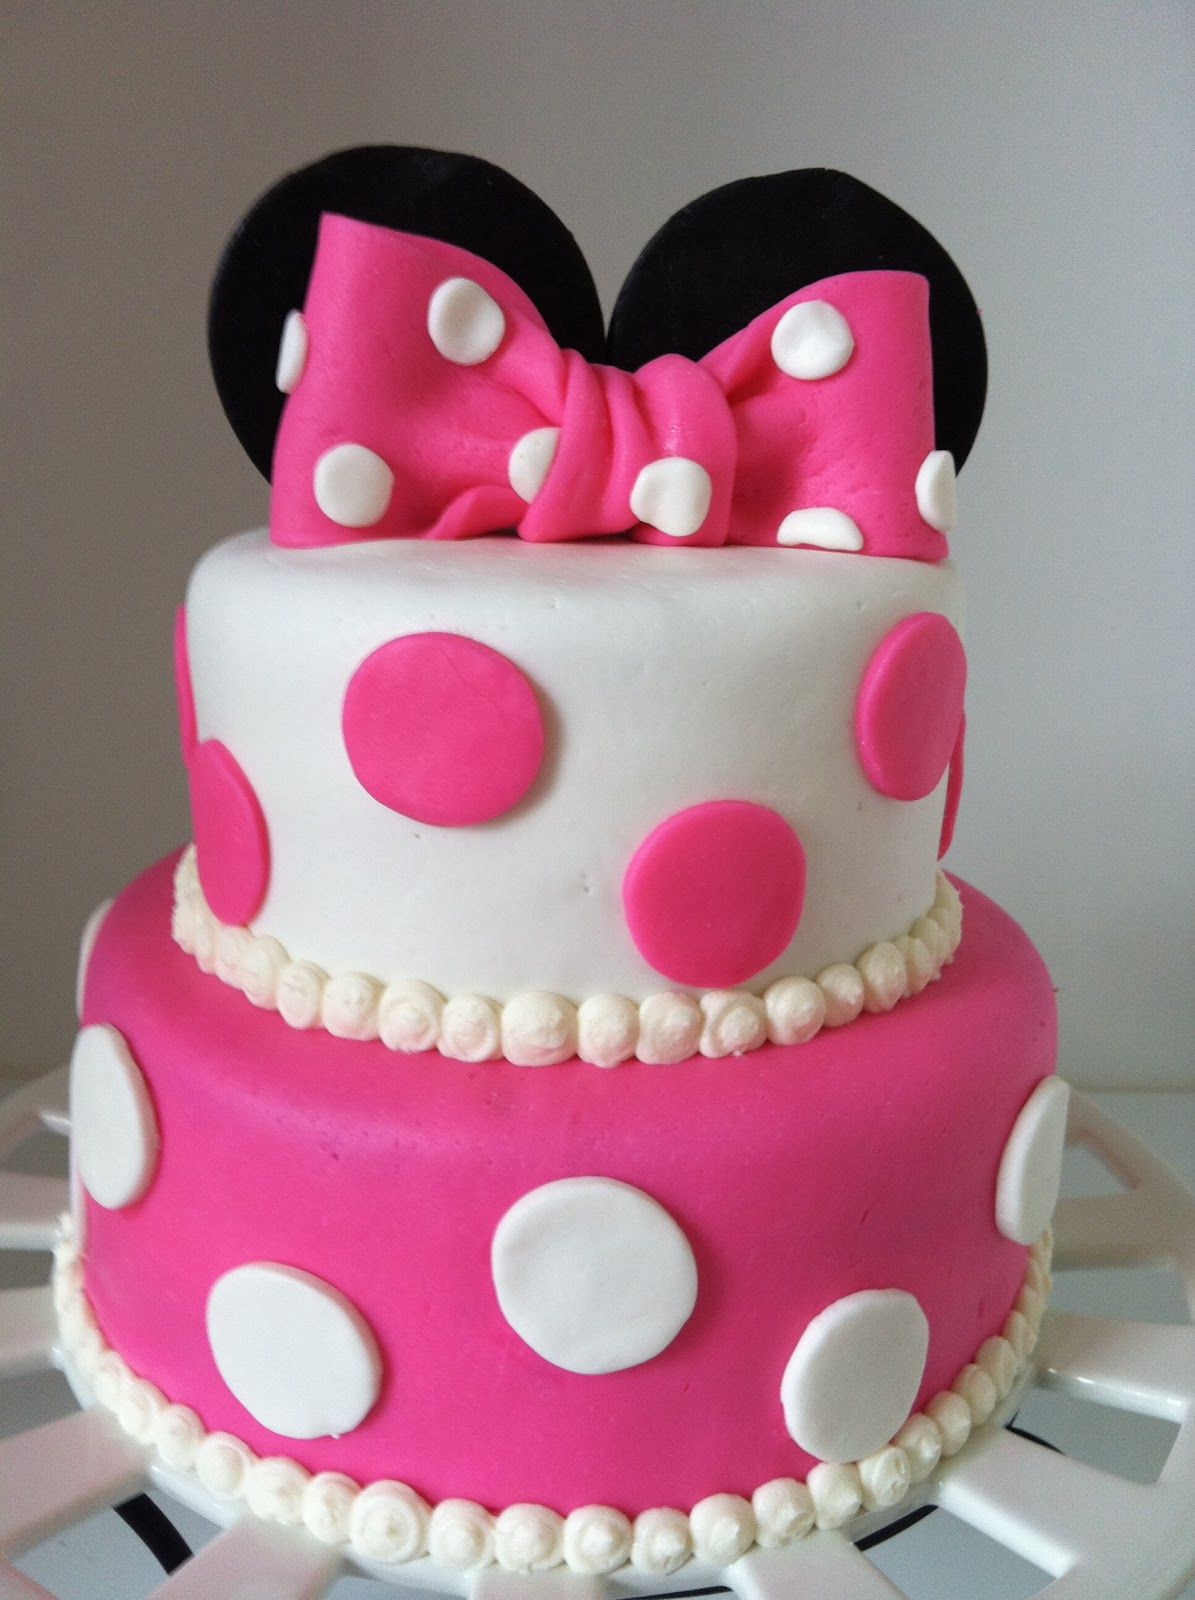 Birthday Cake Ideas Girl 8 : 2nd birthday cakes for girls The Weekly Sweet Experiment ...